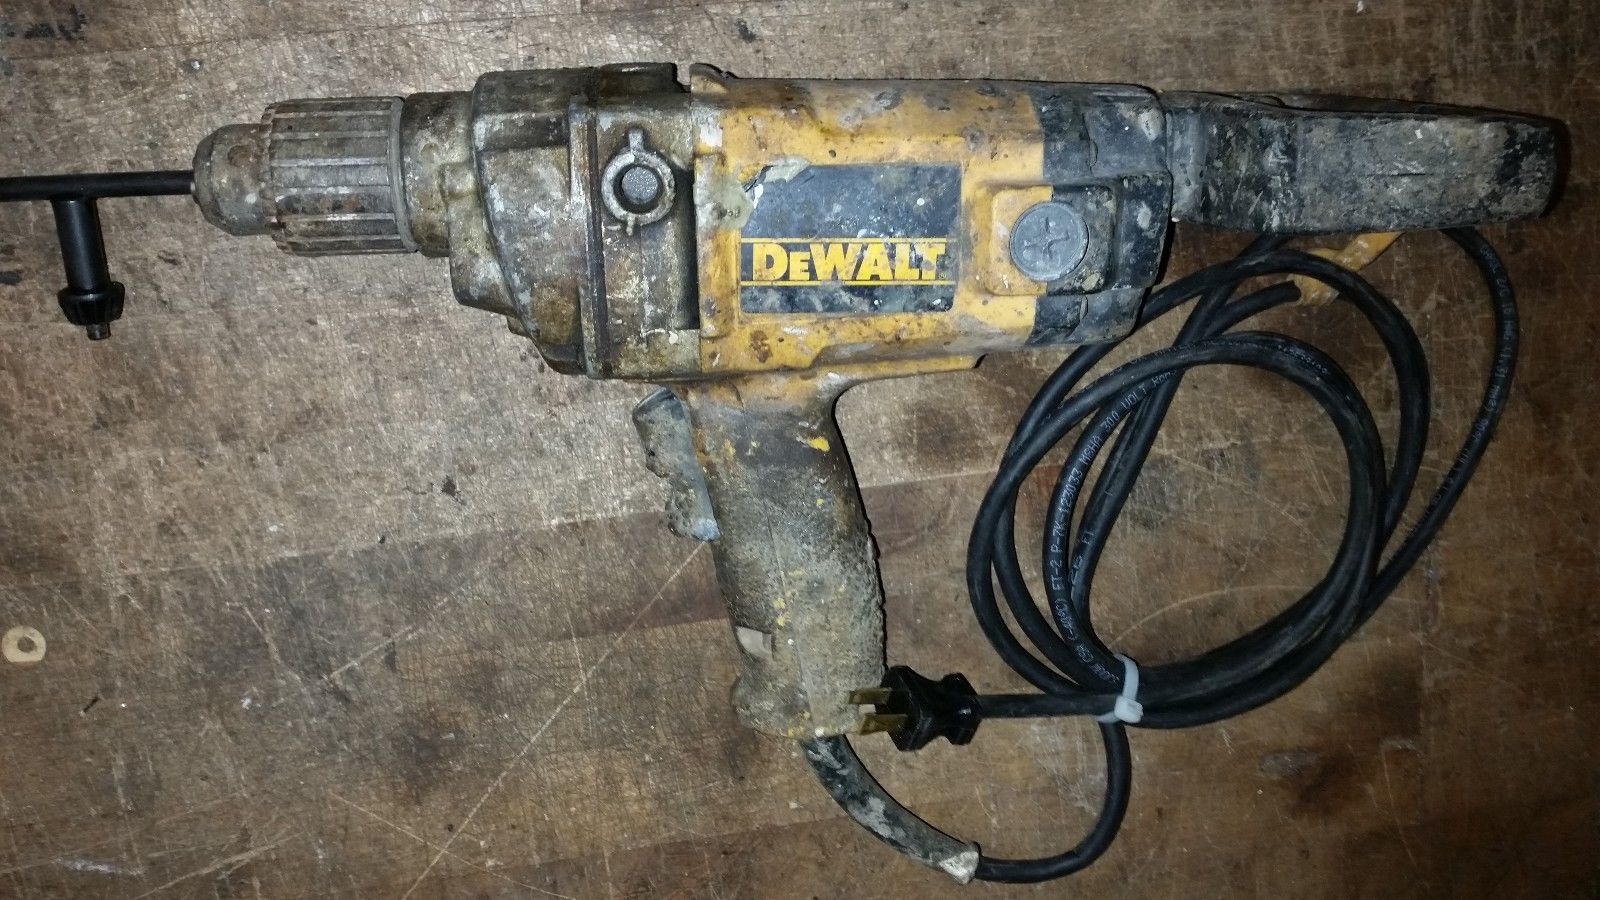 "DEWALT DW130 1/2"" VSR CORDED D HANDLE DRILL TYPE 2"